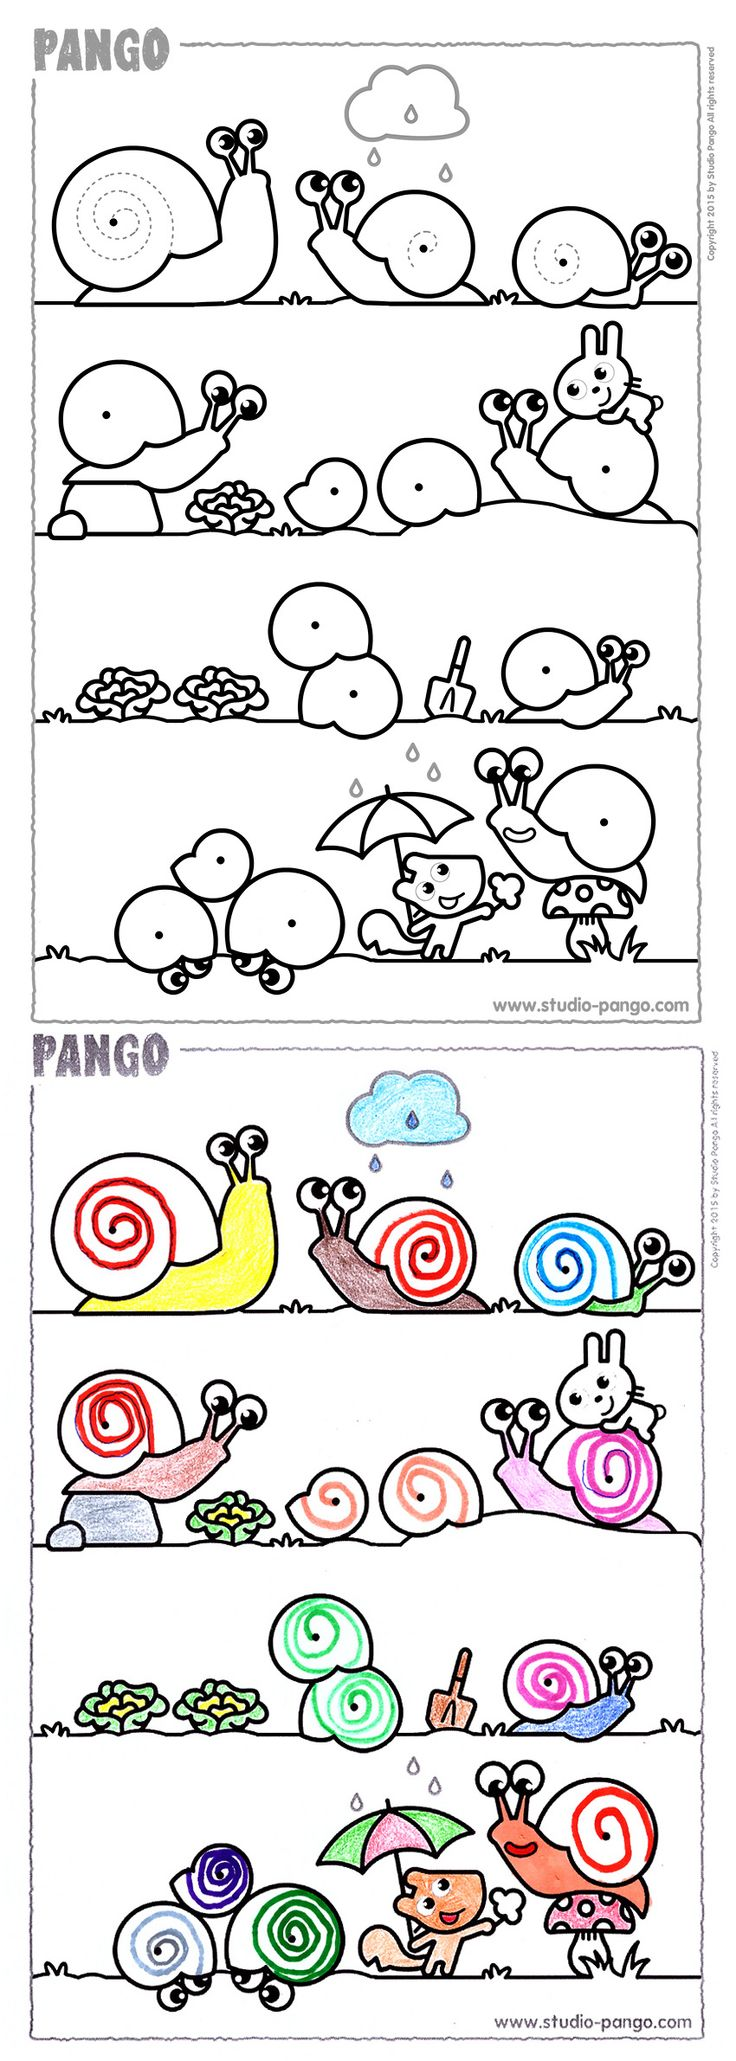 Snails in the garden #drawing #coloring #spirals